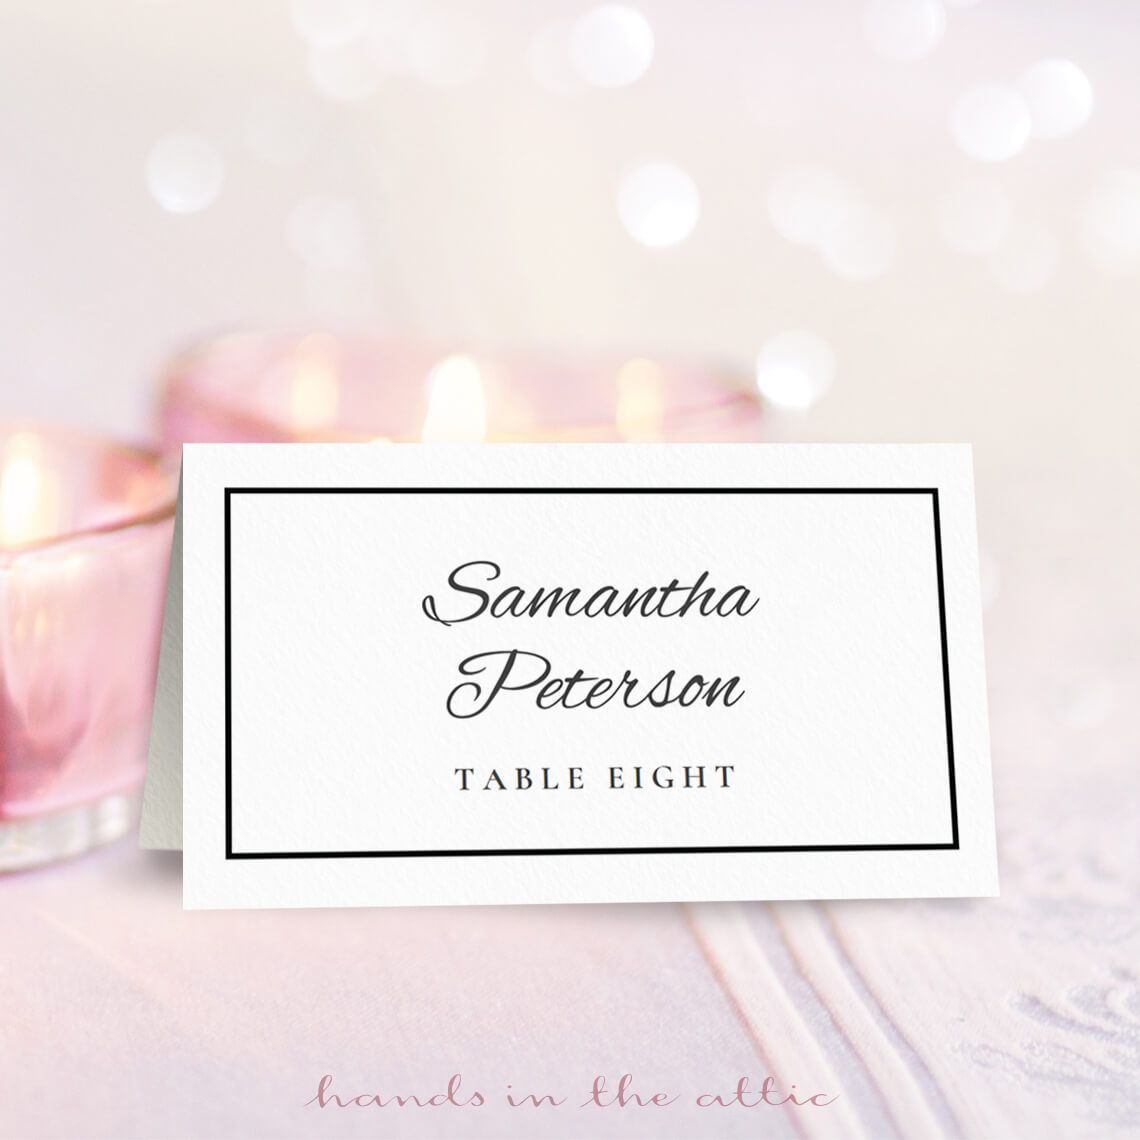 003 Impressive Name Place Card Template Free Download Highest Clarity  Psd VectorFull